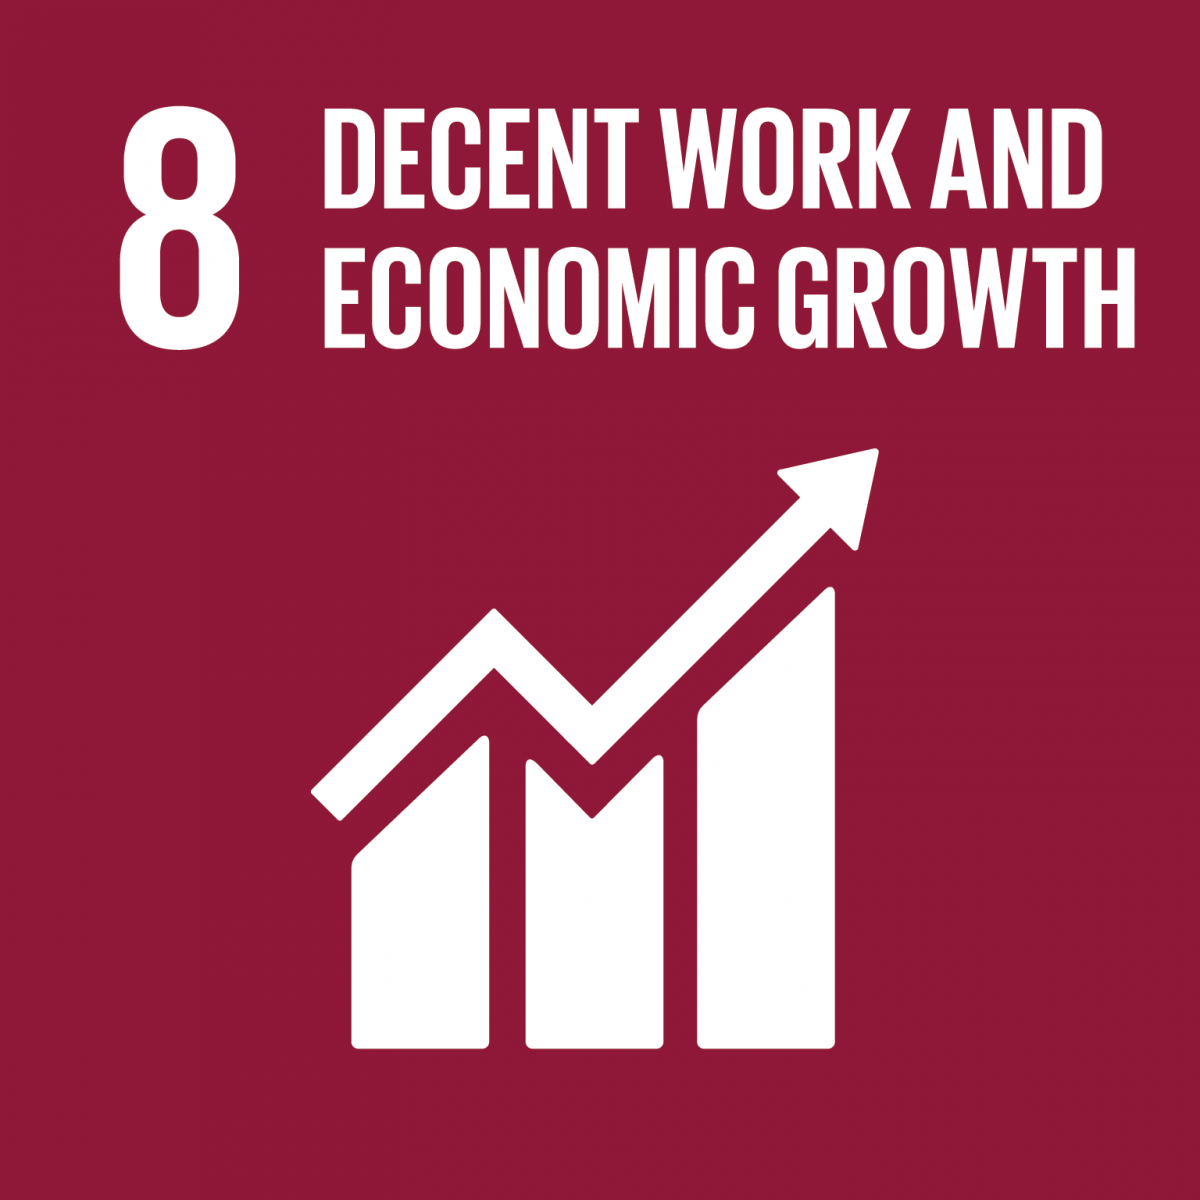 8th Goal is Decent Work and Economic growth